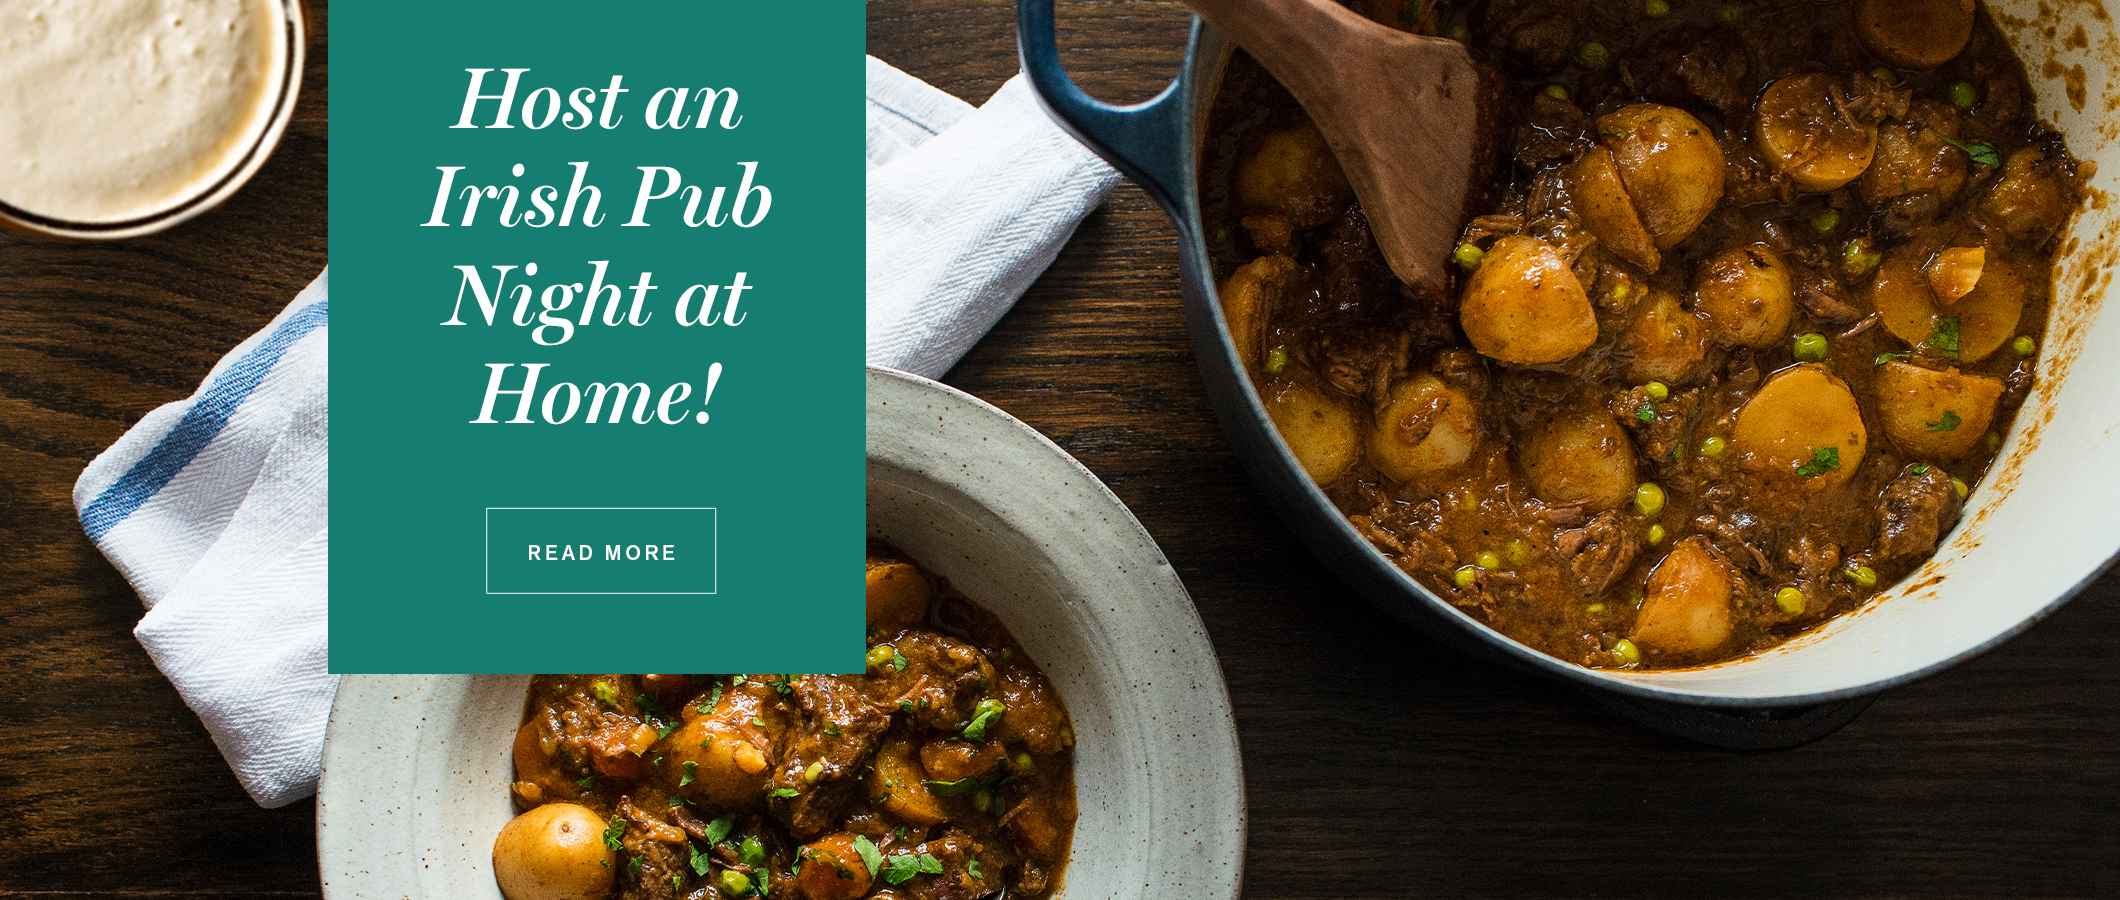 Host a Irish Pub Night at Home!  READ MORE